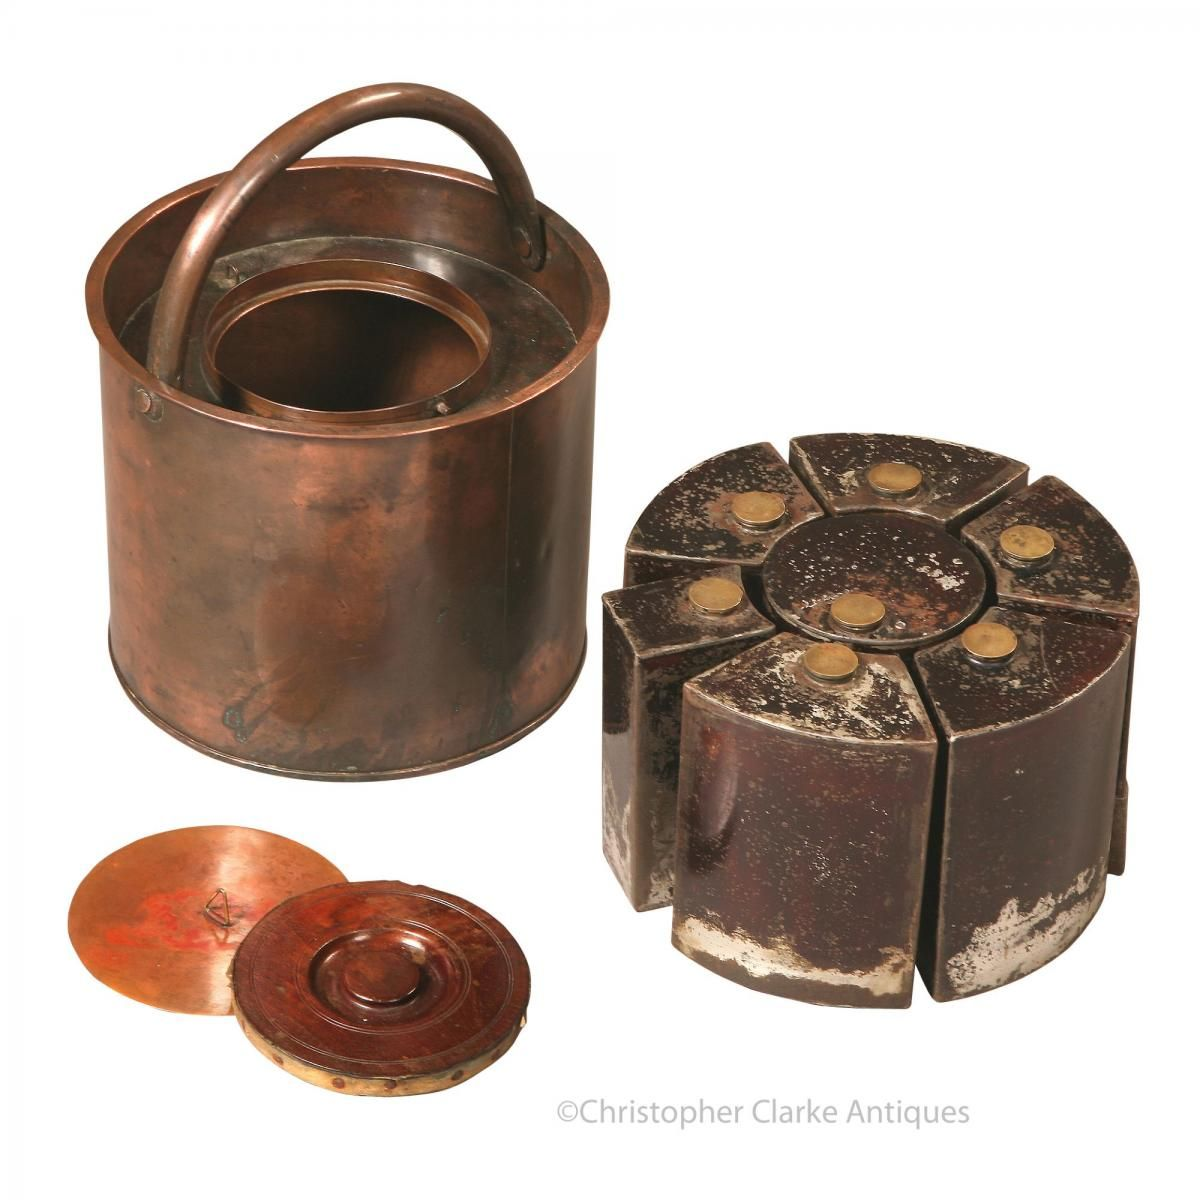 The purpose of using copper to make this Black Powder Drum is to minimize the danger from sparks that might...